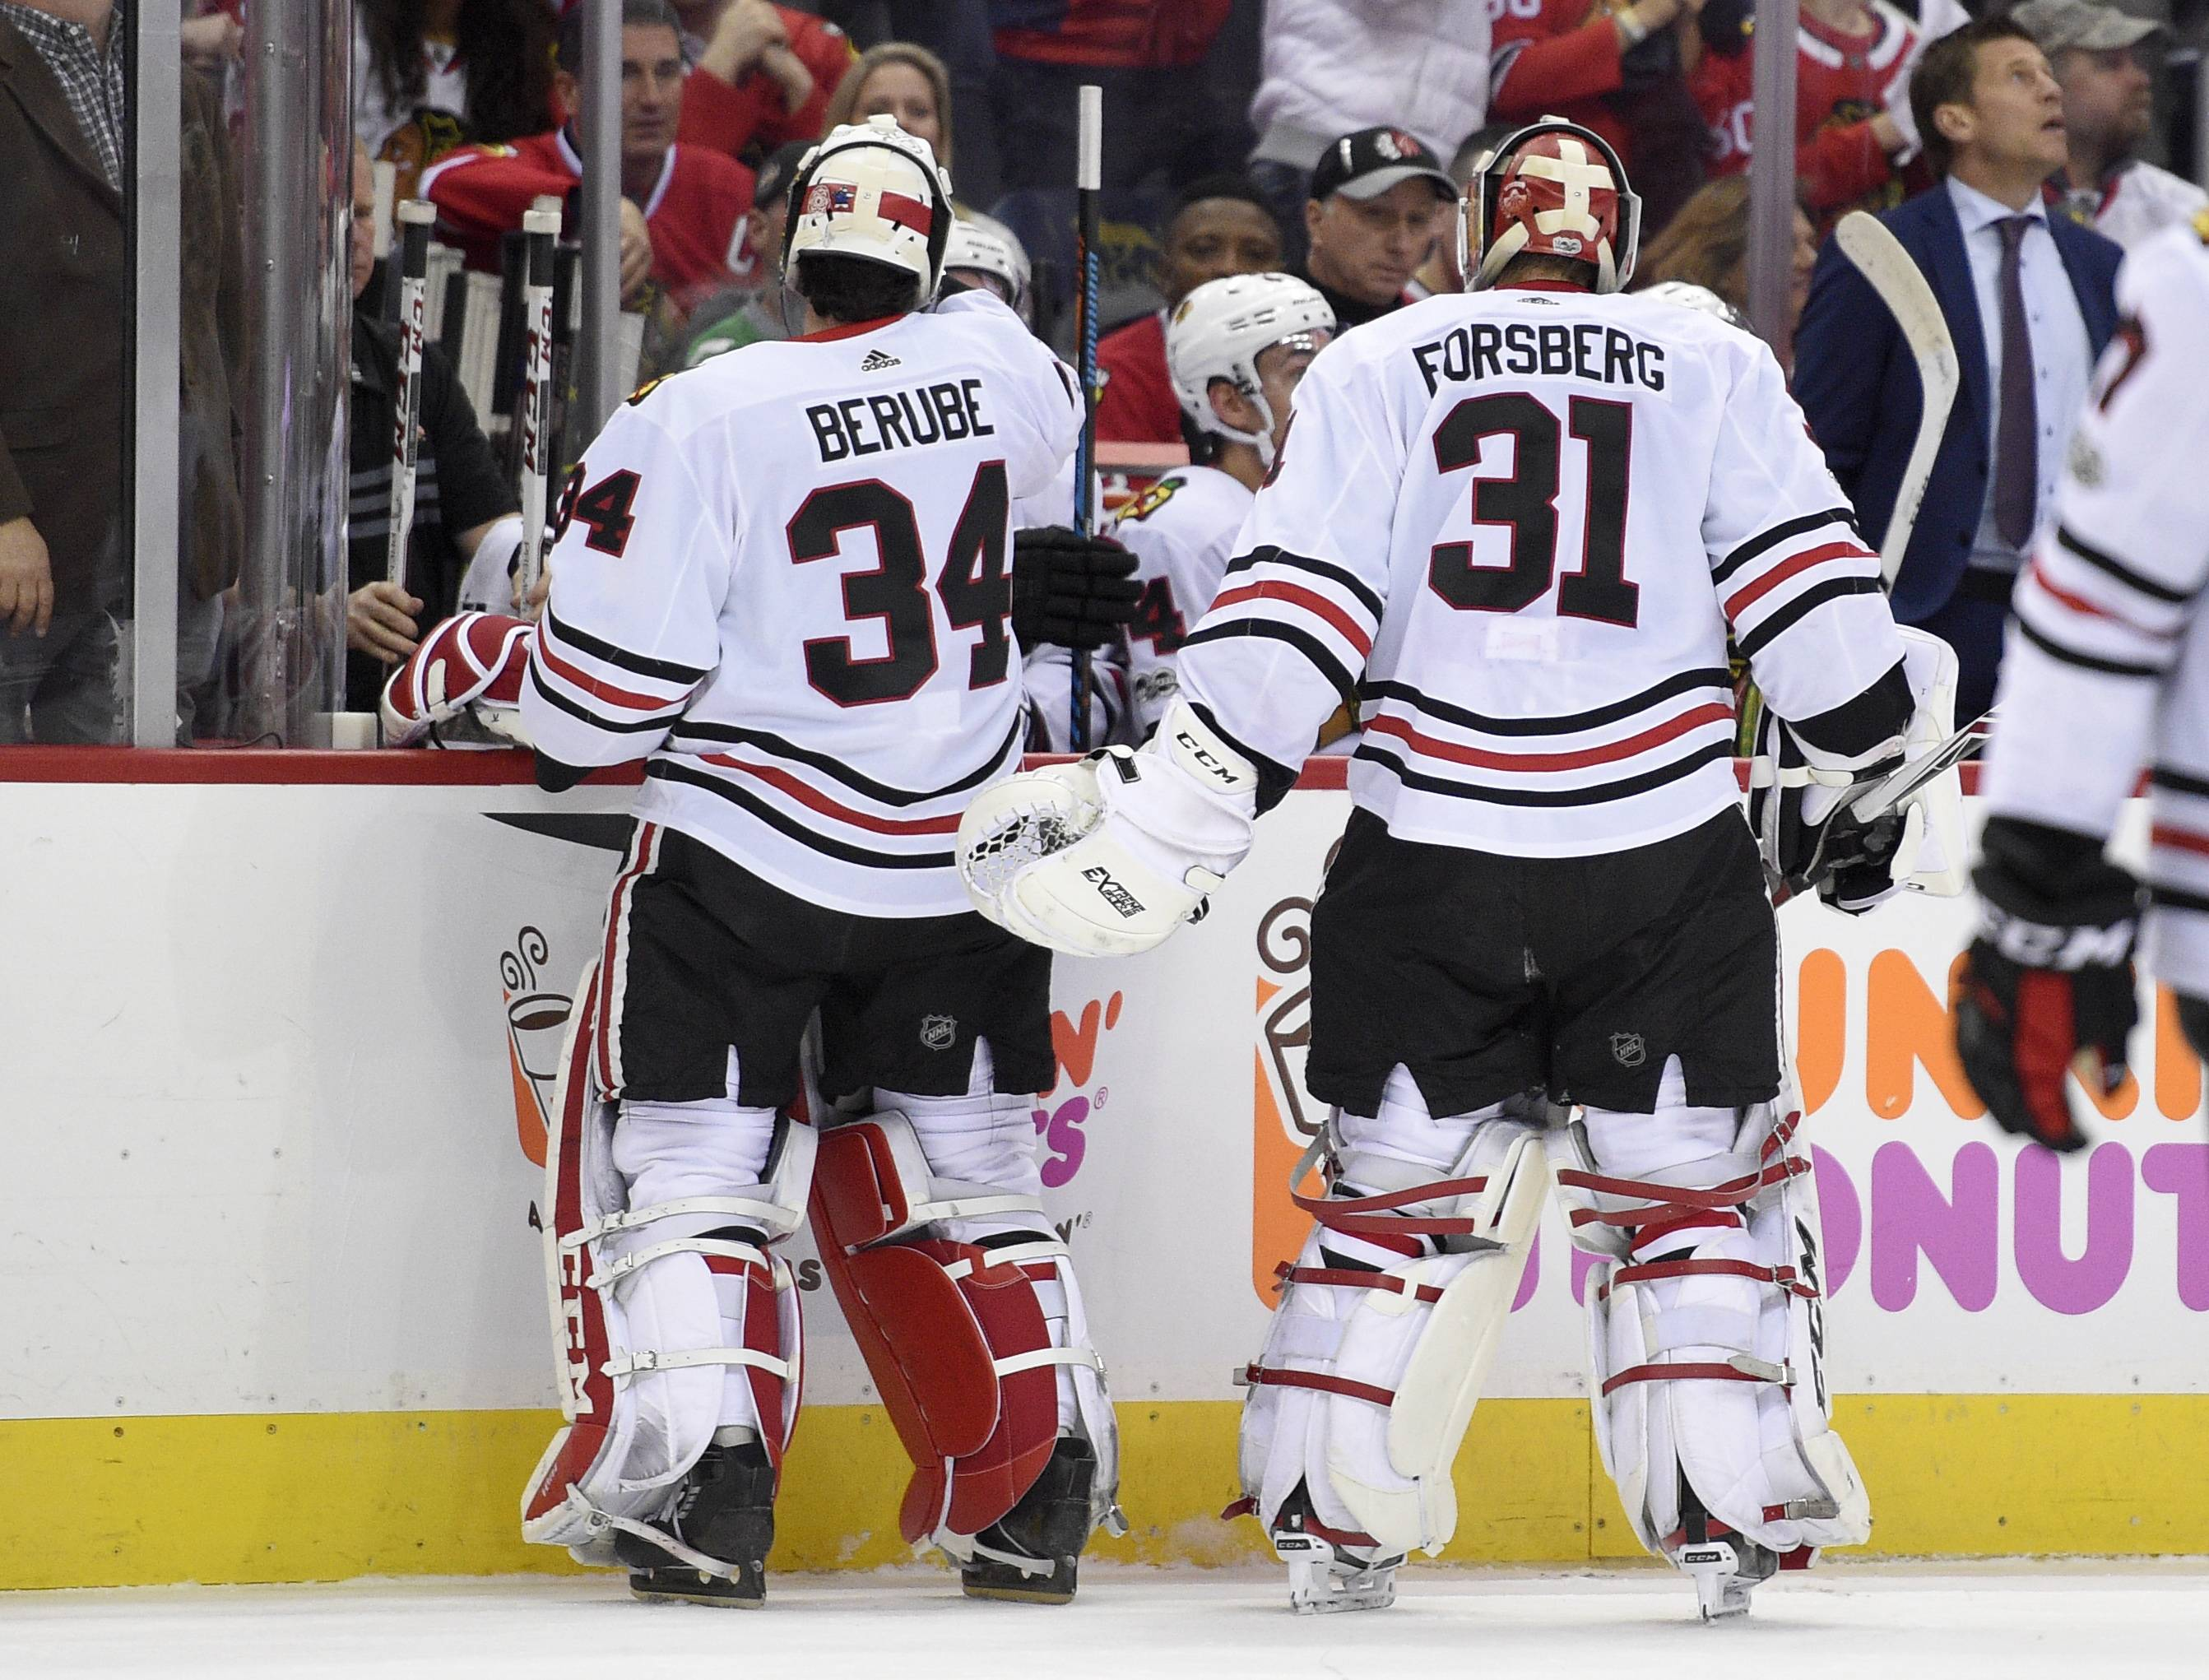 Both Anton Forsberg (31), and J-F Berube have a lot to prove to the Chicago Blackhawks over the final 11 games of the regular season. Assuming Corey Crawford is 100 percent healthy next season, just one of the two goalies will be named as Crawford's backup.